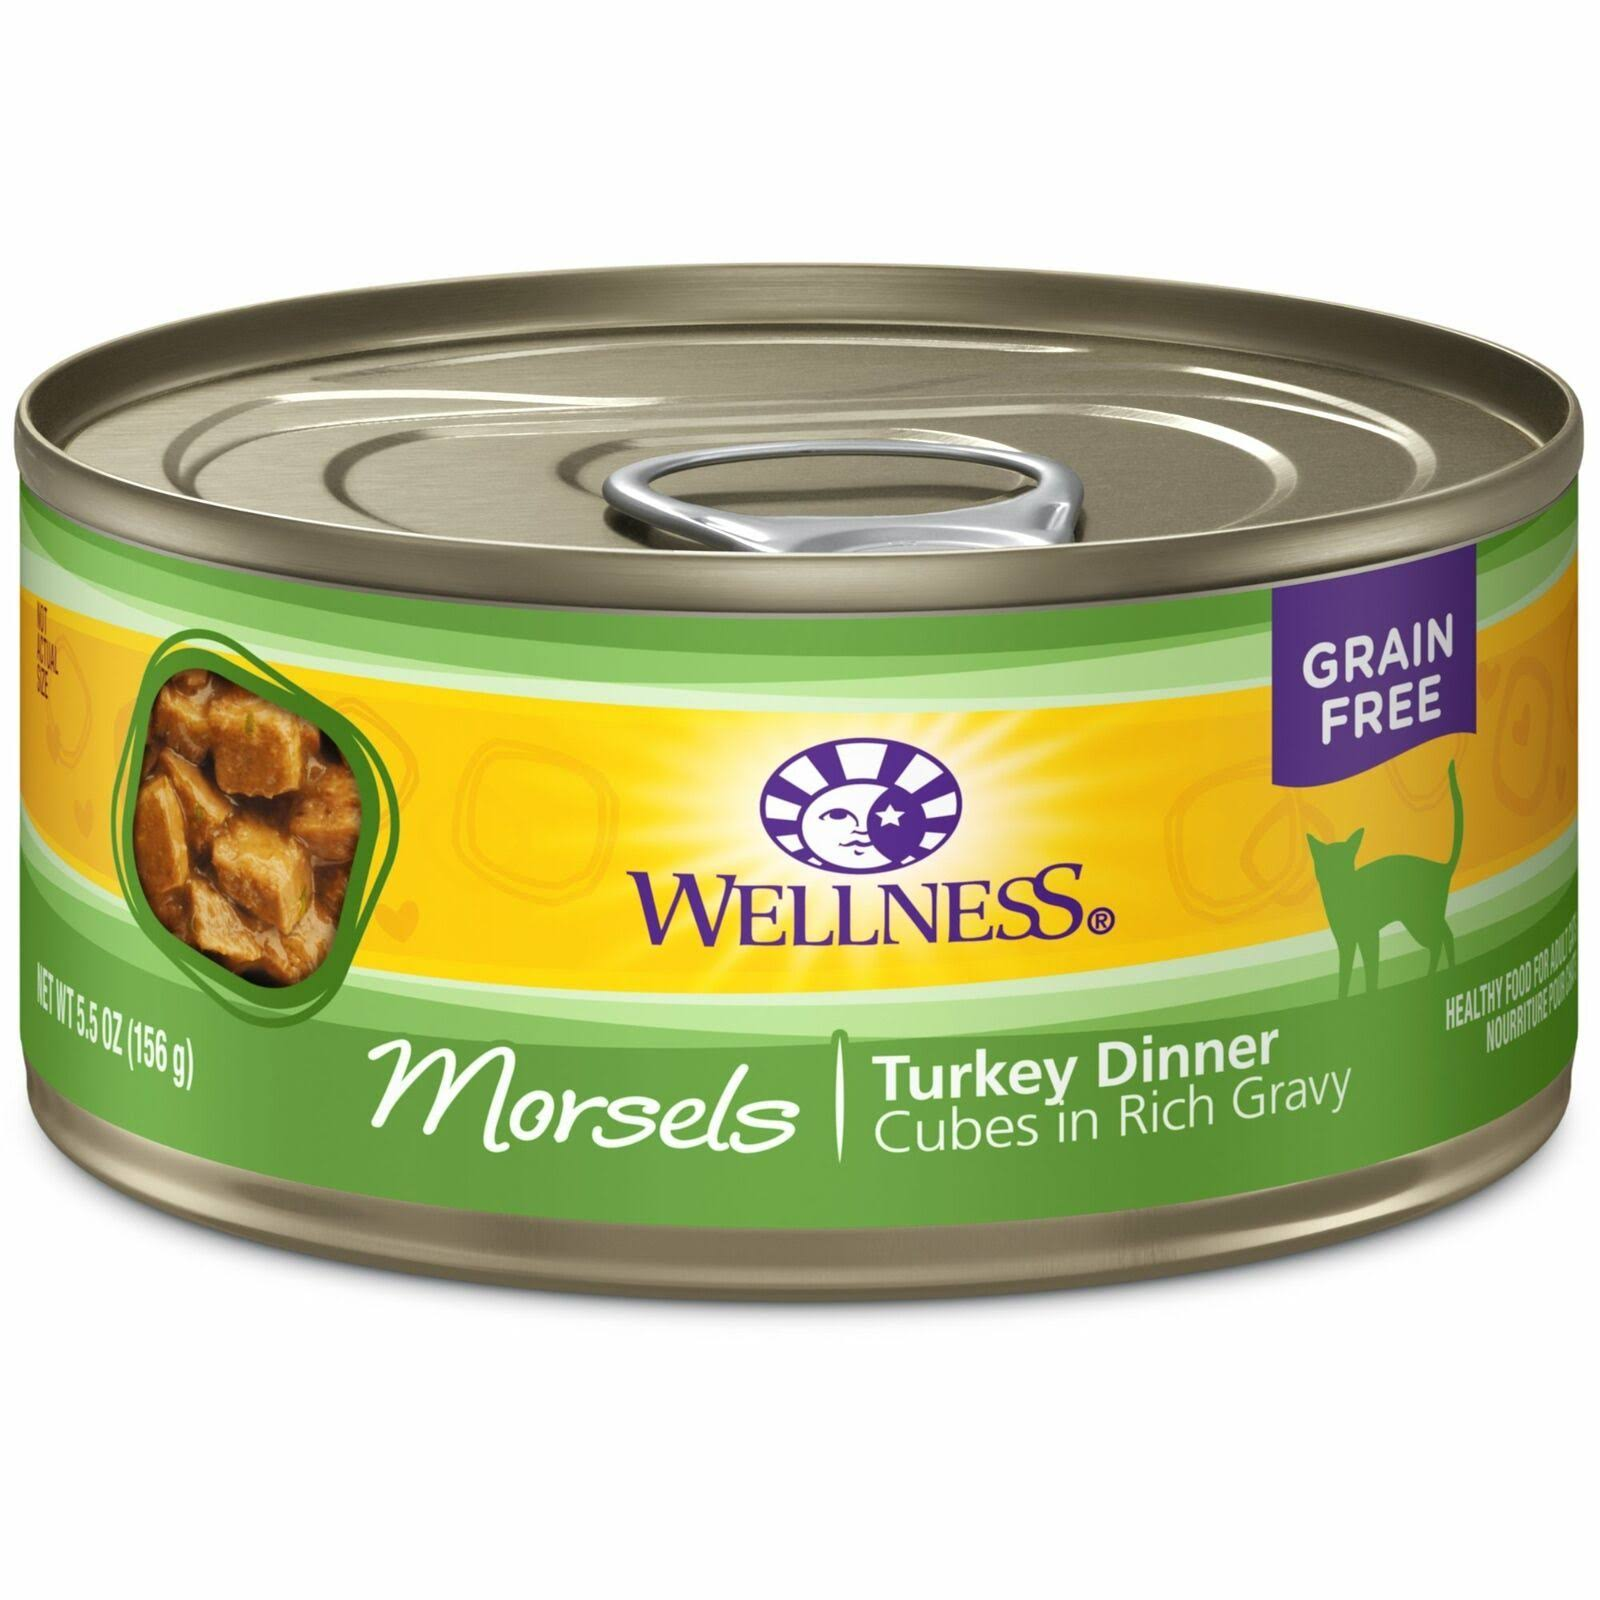 Wellness Grain Free Cat Food - Turkey Dinner